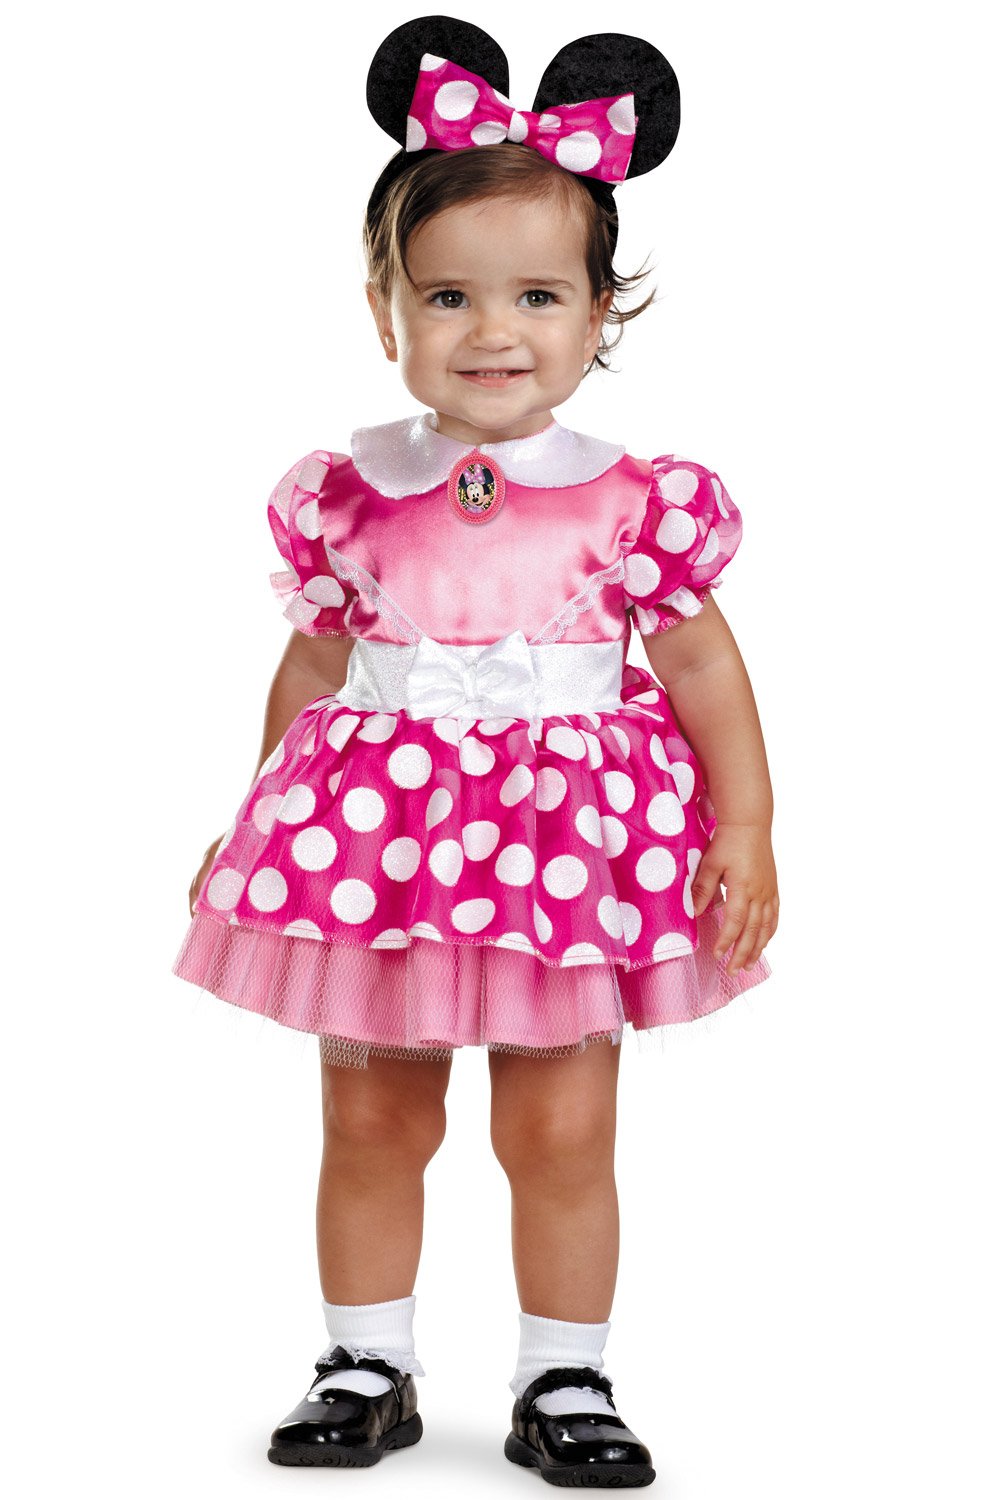 Mickey and Minnie Mouse Costume Collection for Family $ - $ $ - $ The whole family will be decked out in swell style in this Mickey and Minnie Mouse costume collection, featuring sweet Halloween attire for adults, kids, and baby!